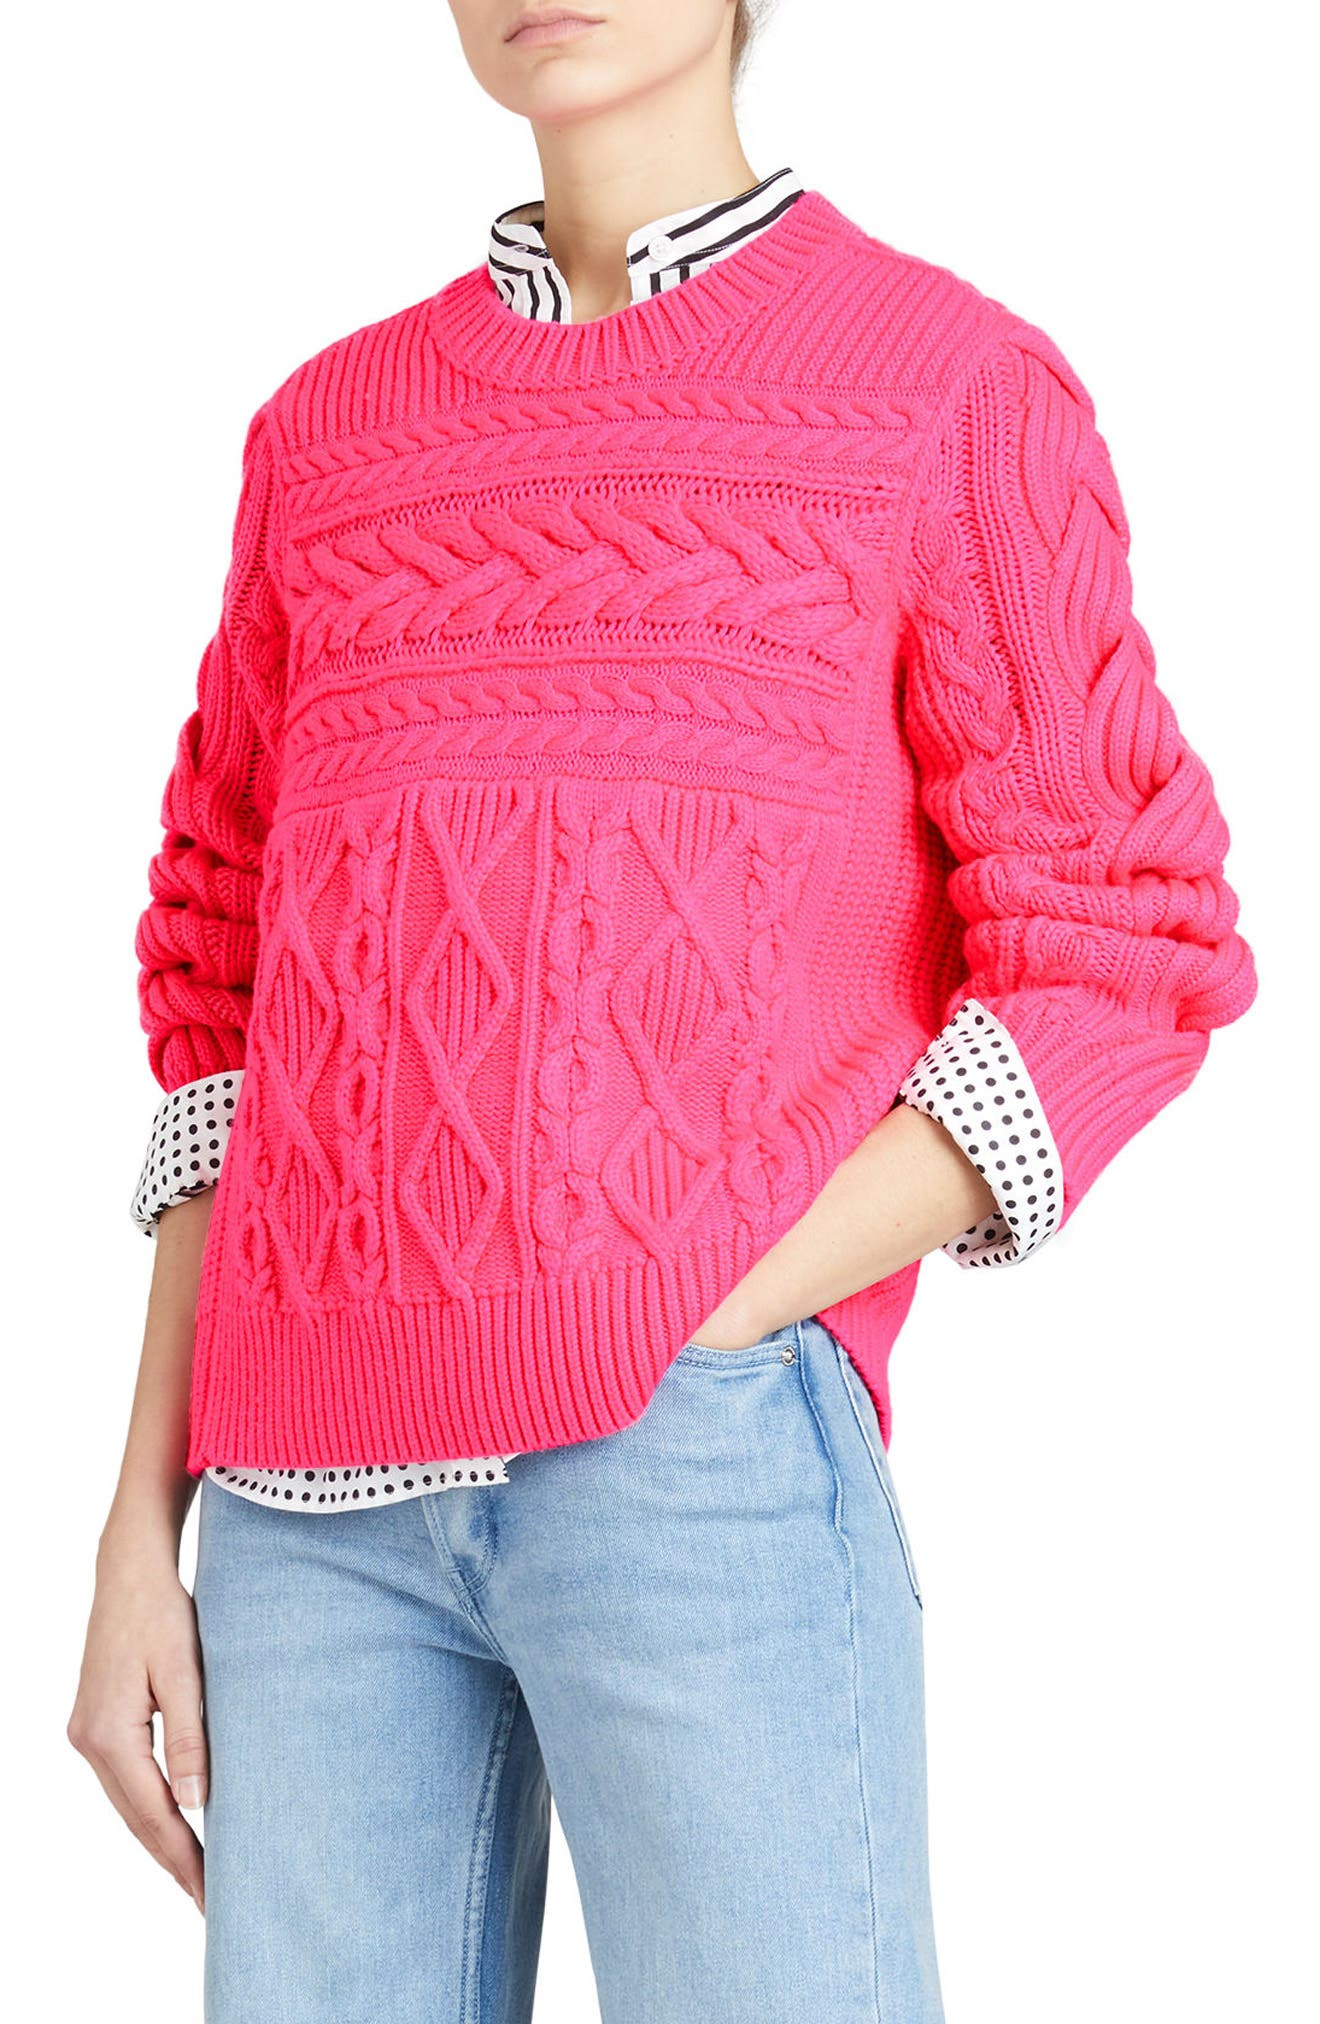 Tolman Aran Knit Sweater,                         Main,                         color,